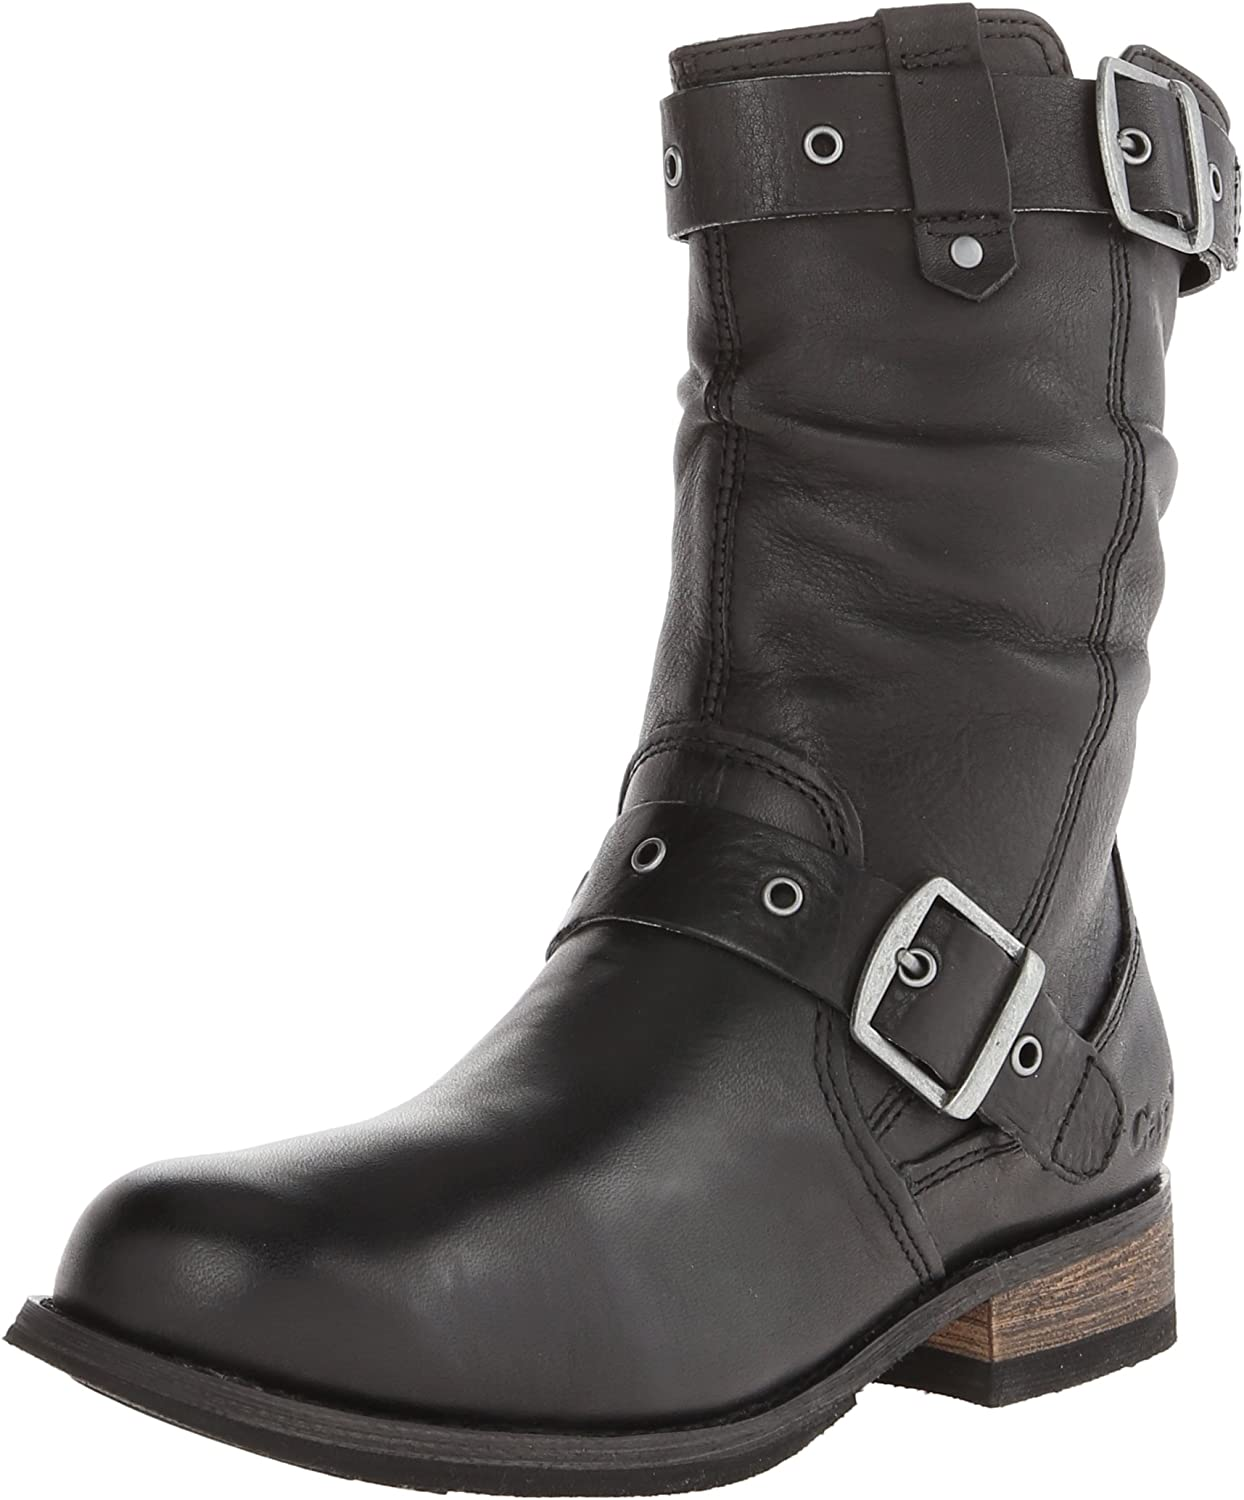 CAT Footwear Caterpillar Women's Midi Engineer Boot